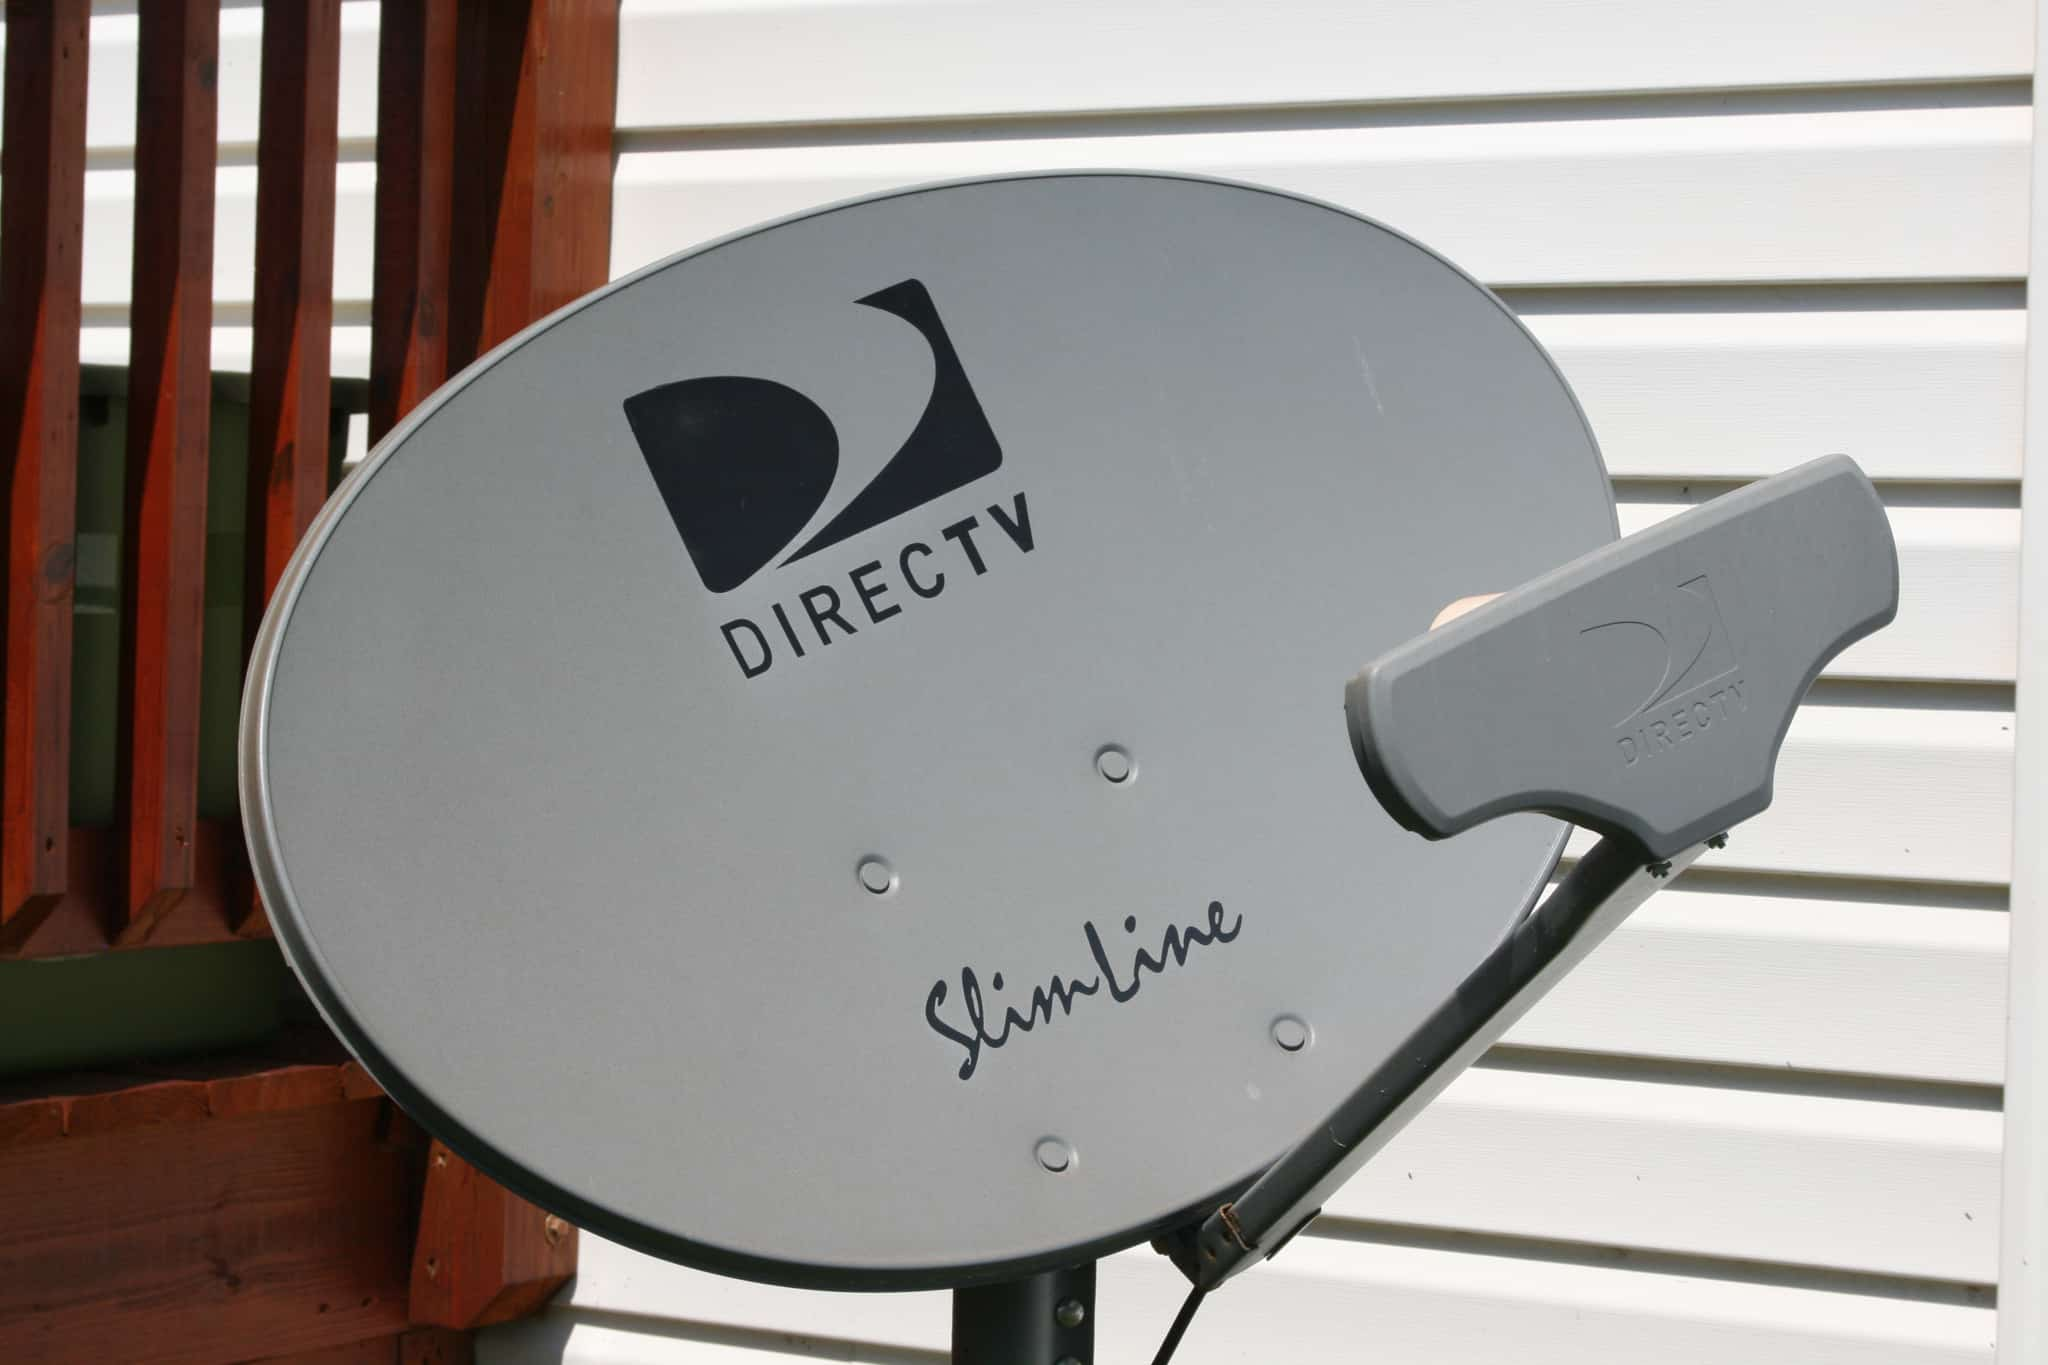 DIRECTV Error Code 775 Fix: Problem Communicating With Dish - The Error  Code Pros